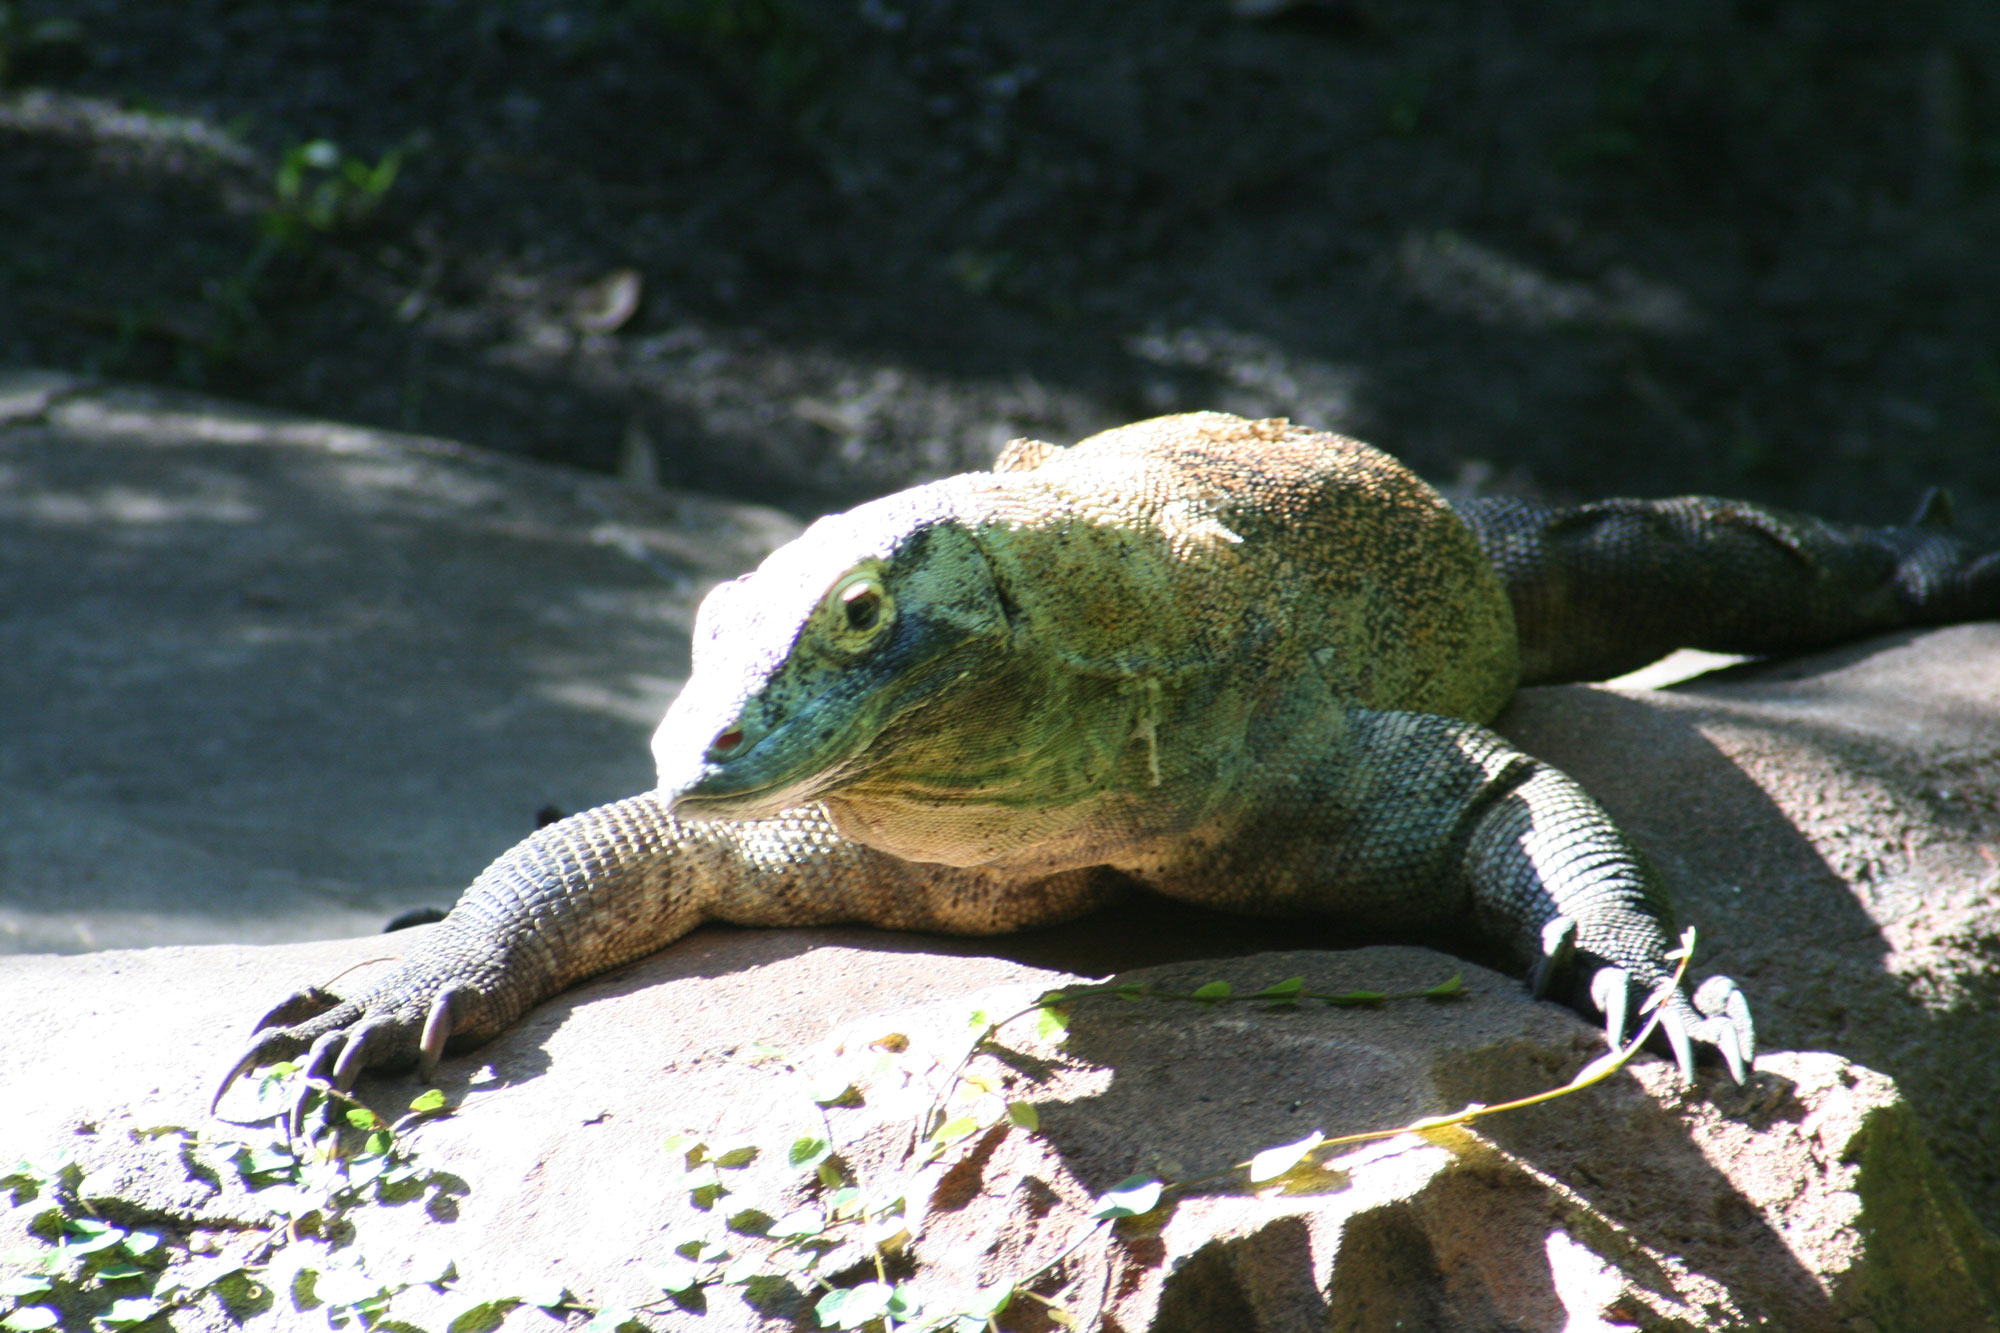 Maharajah Jungle Trek - komodo dragon